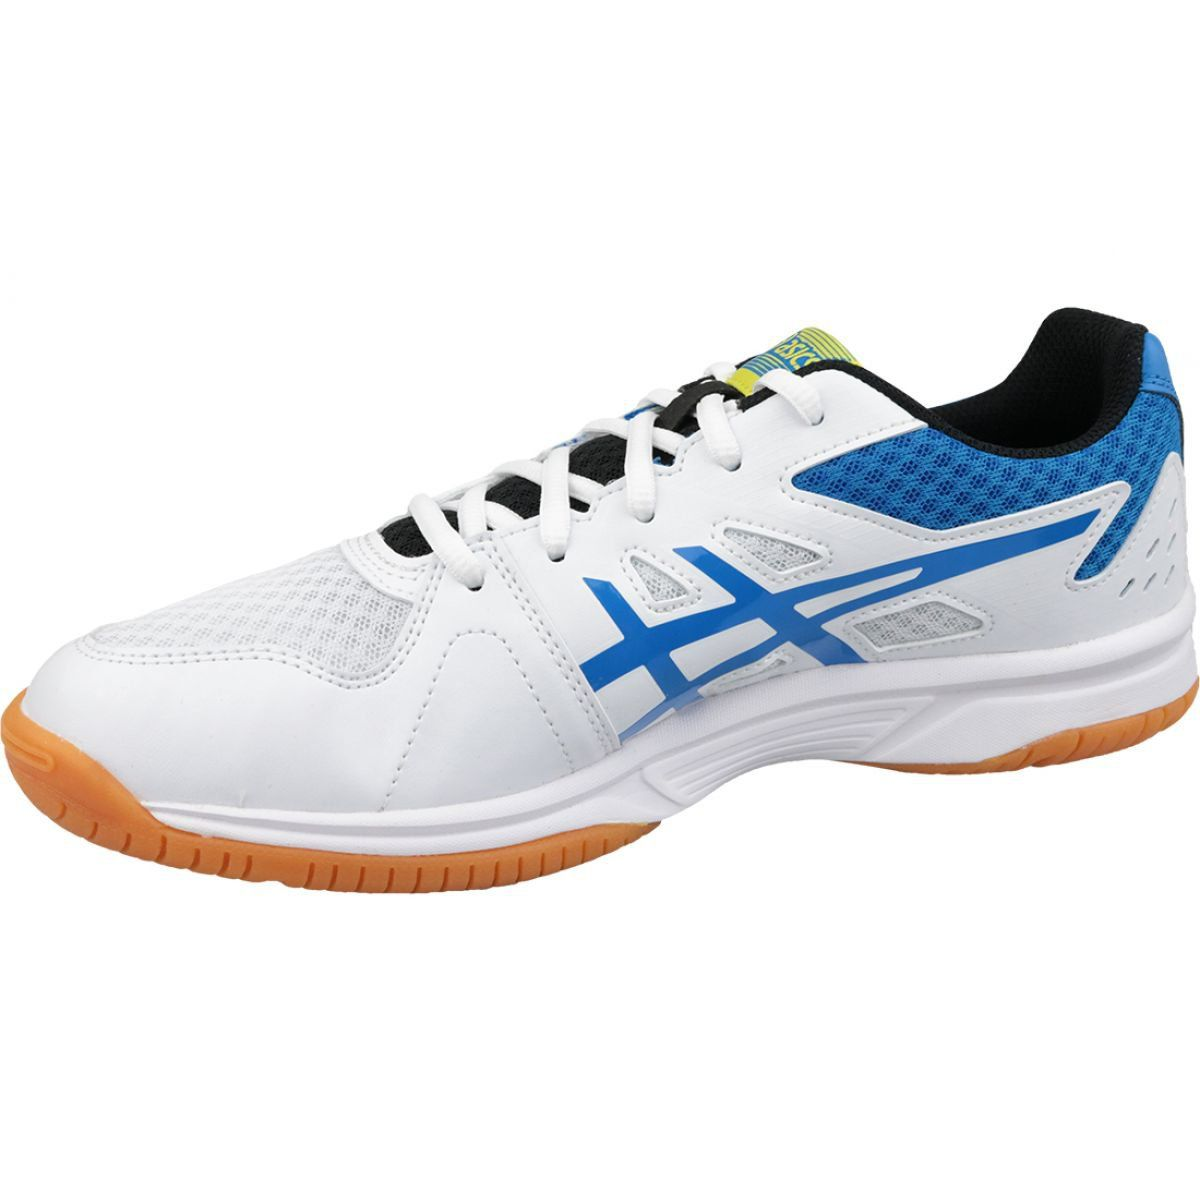 Volleyball Shoes Asics Upcourt 3 M 1071a019 104 White White Volleyball Shoes Mens Volleyball Shoes Asics